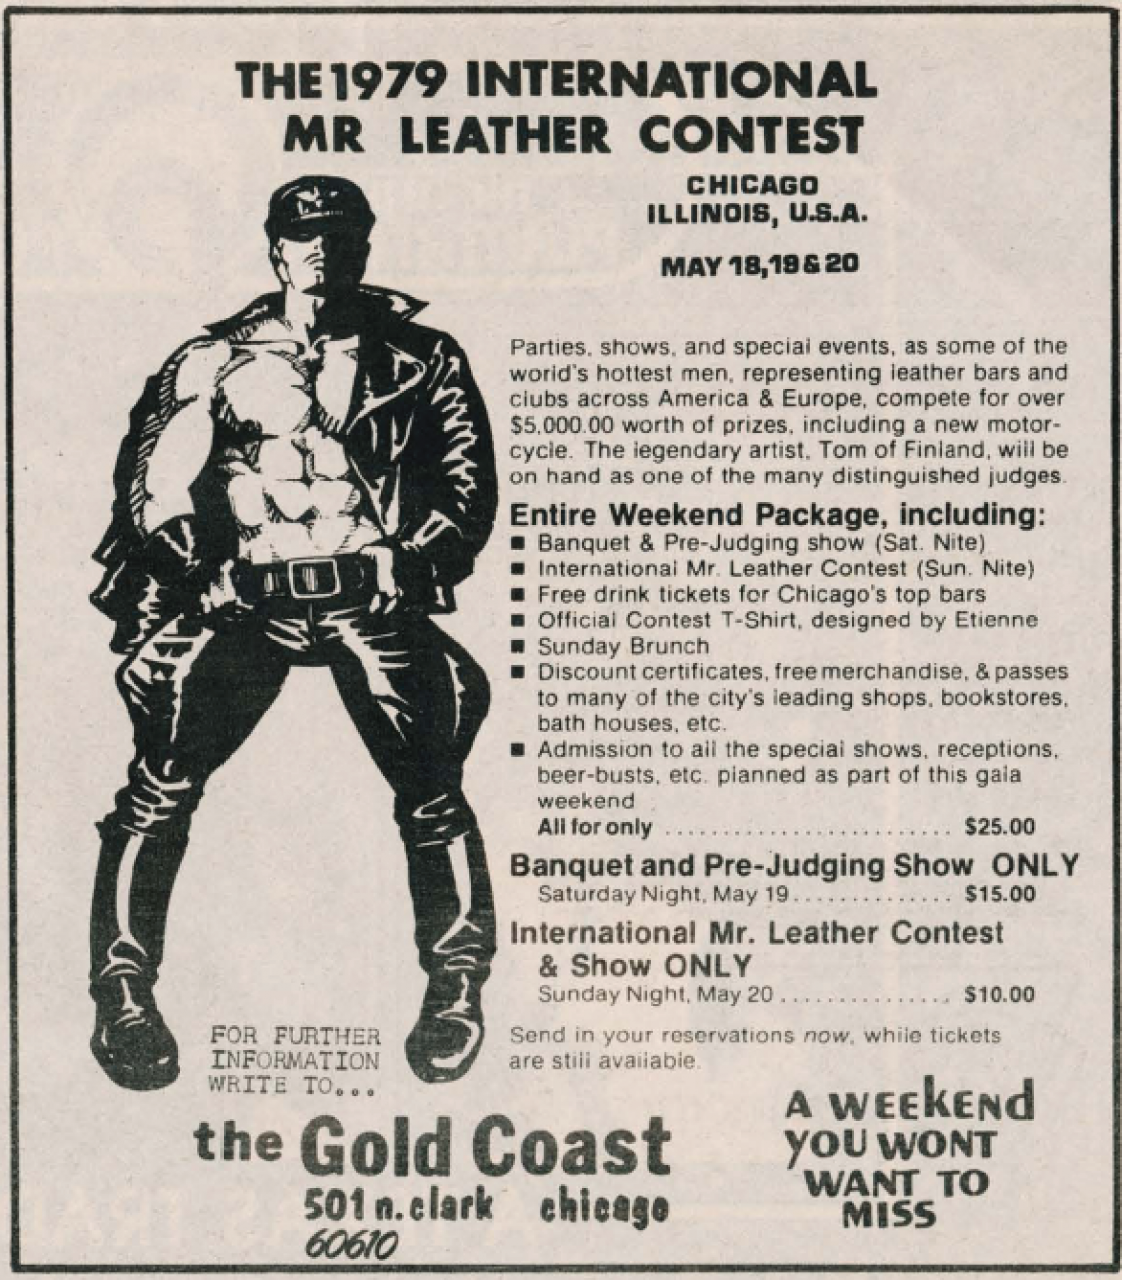 A Glimpse Into Early Gay Leather Contests